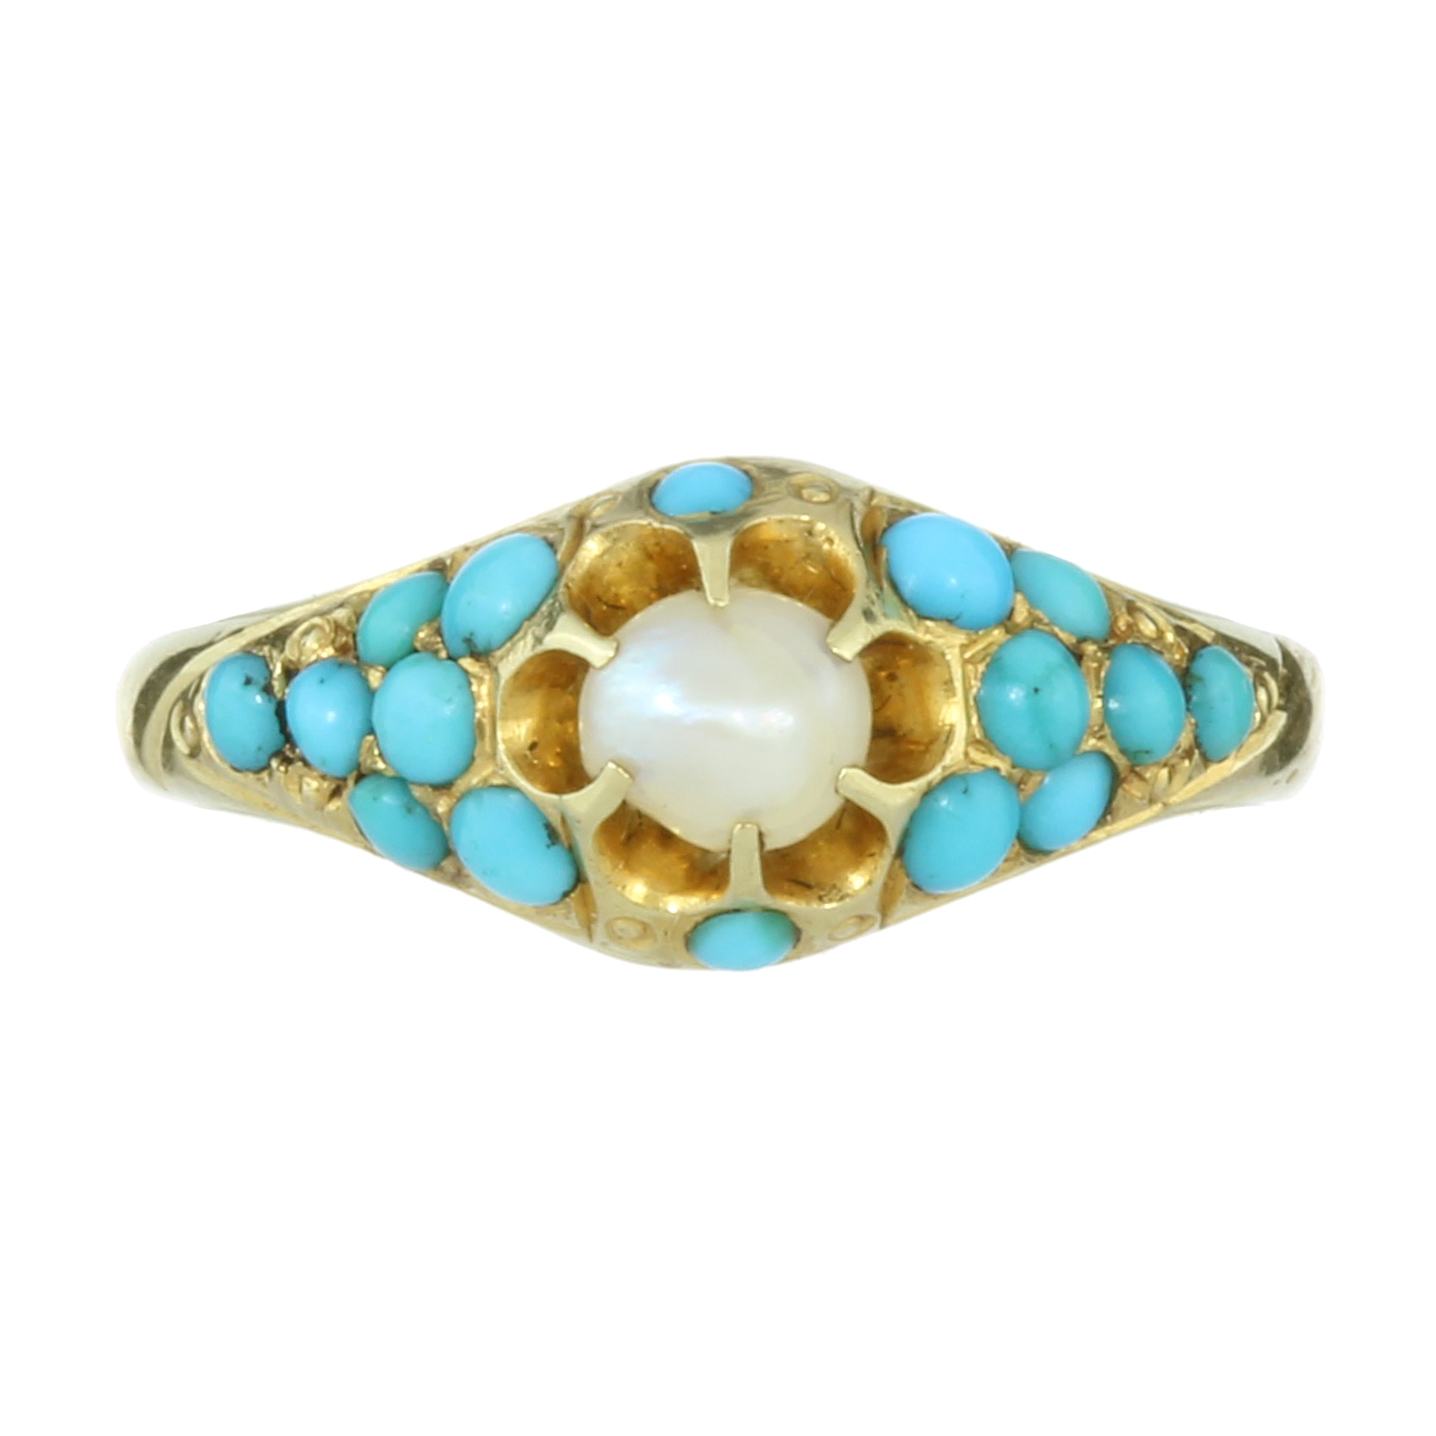 Los 6 - AN ANTIQUE TURQUOISE AND PEARL RING in high carat yellow gold, set with a central pearl of 4.6mm,